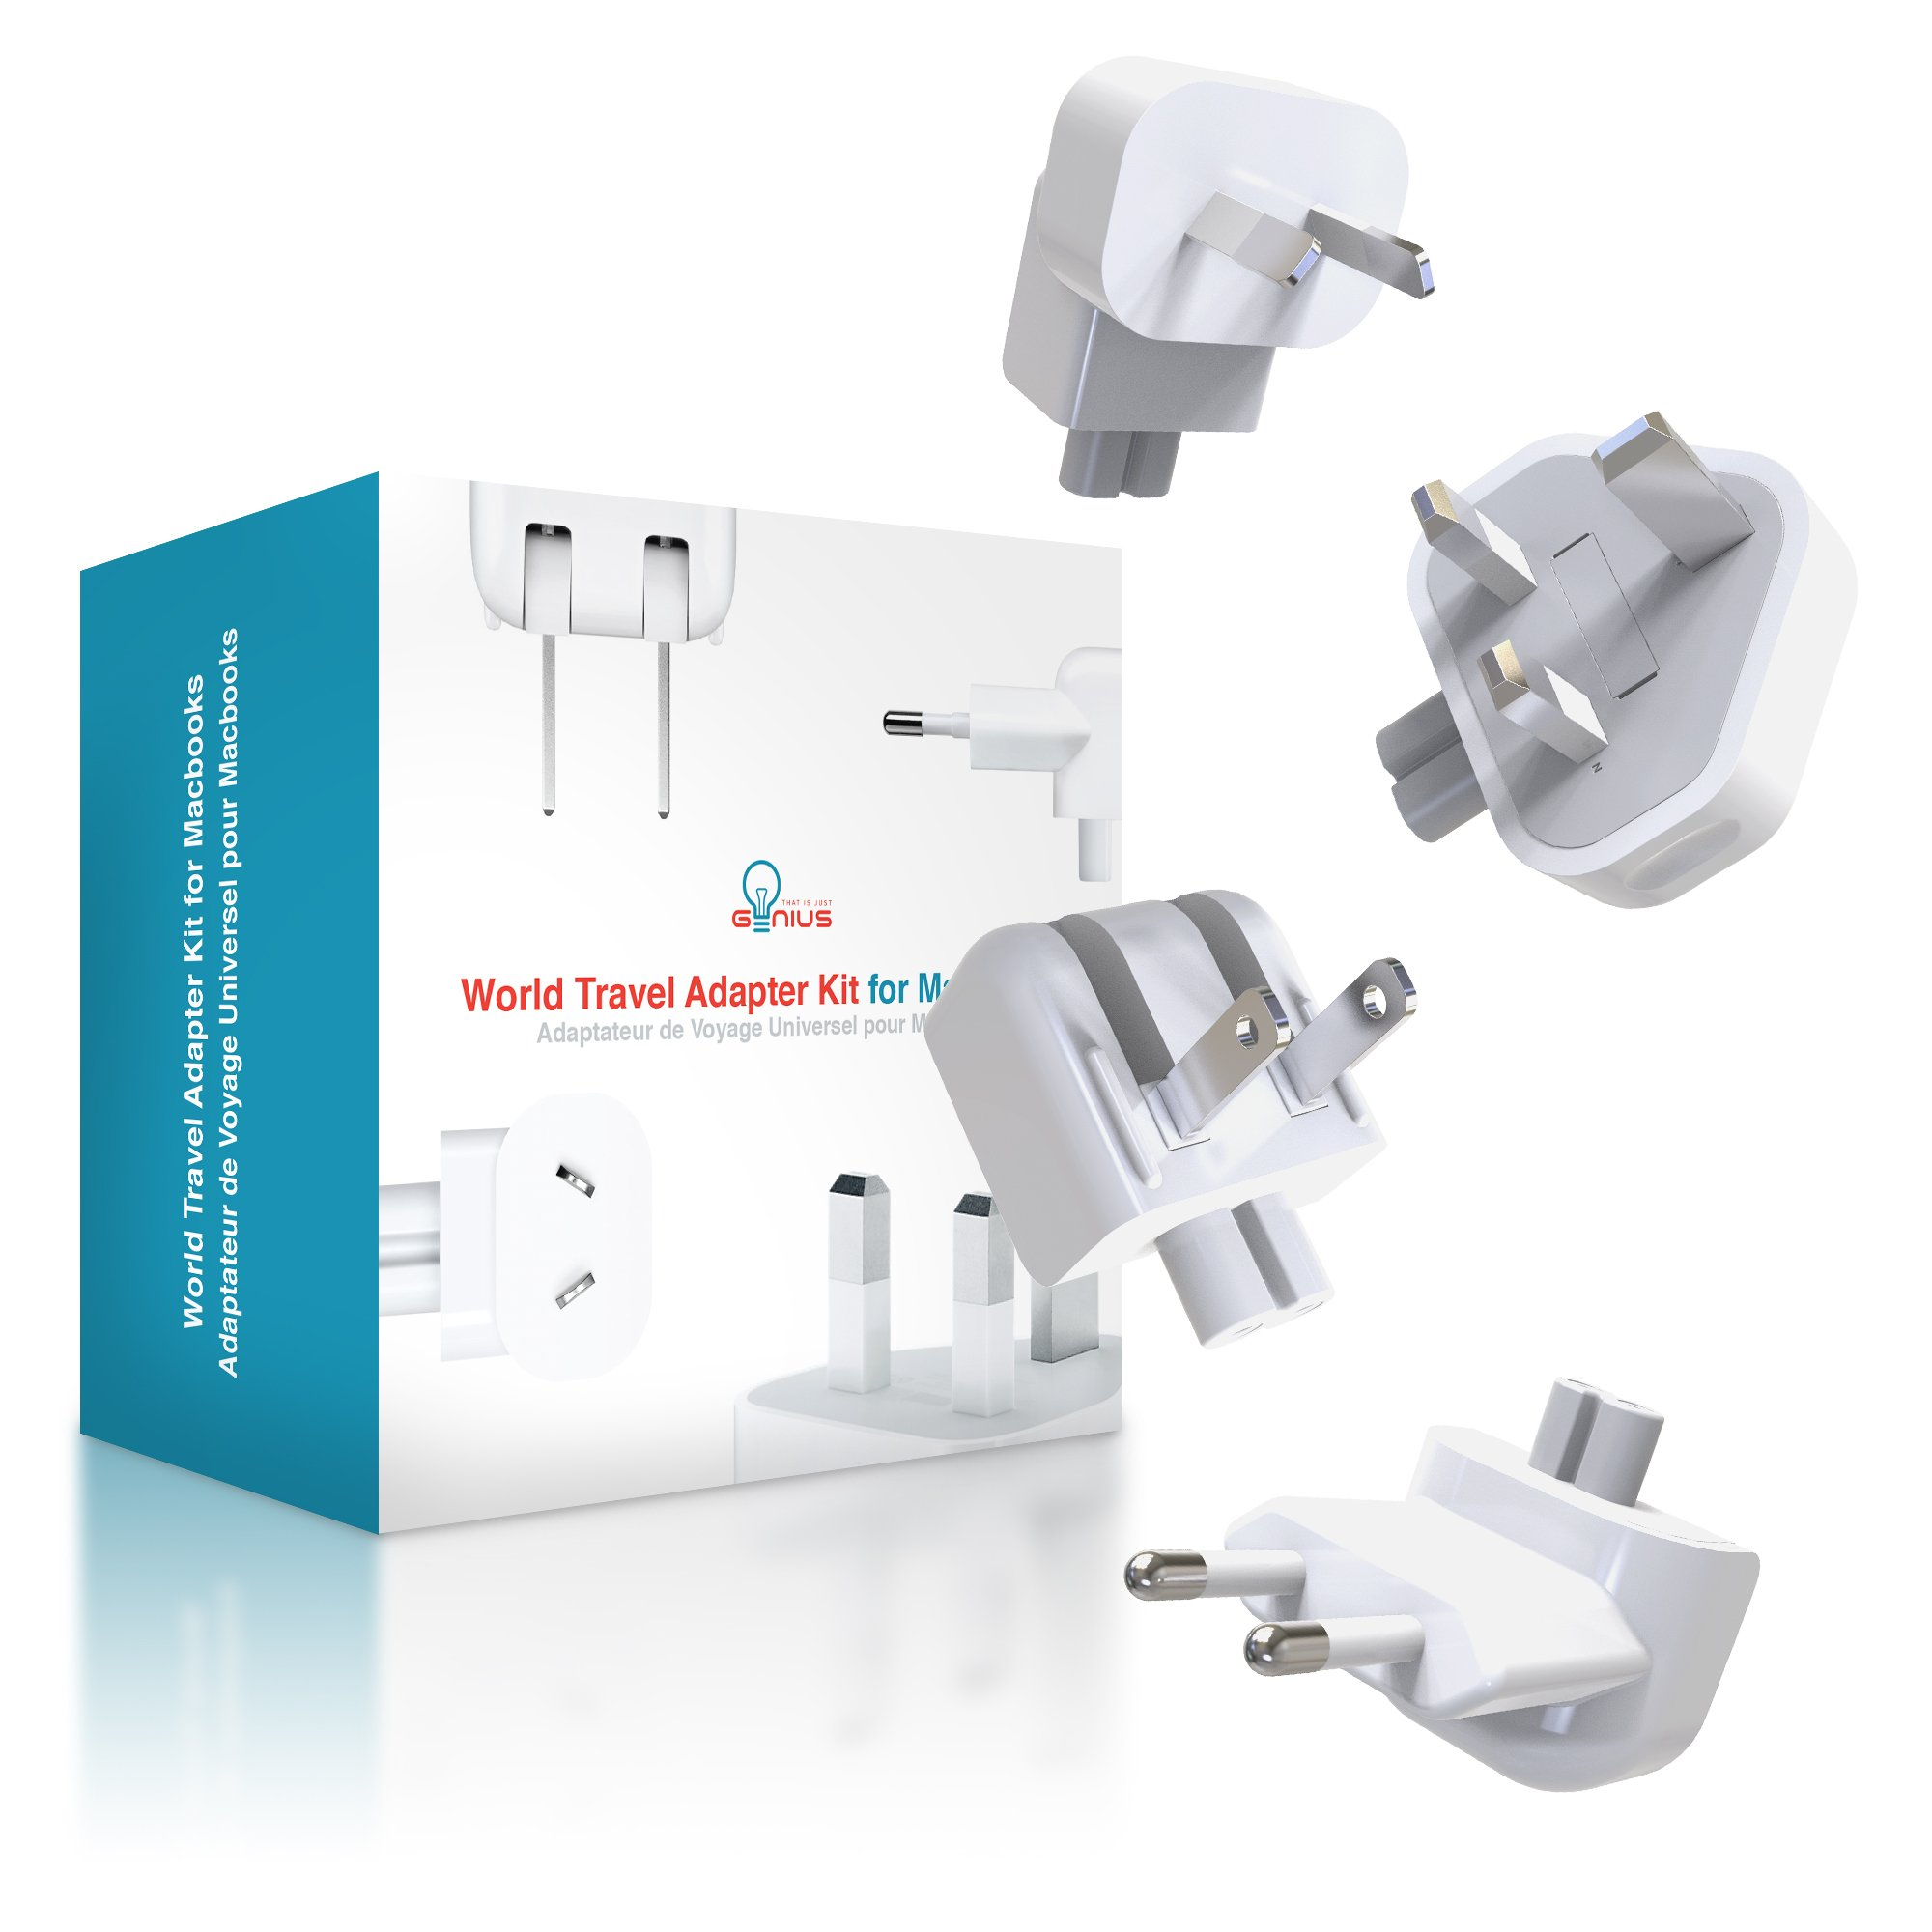 Universal Apple Macbook Travel Adapter Kit | Genius International Plug Charger Adapter | All-In-One World Kit For US, UK, EU, AU, China, Africa & More | Overcharging Protection For Your Laptop